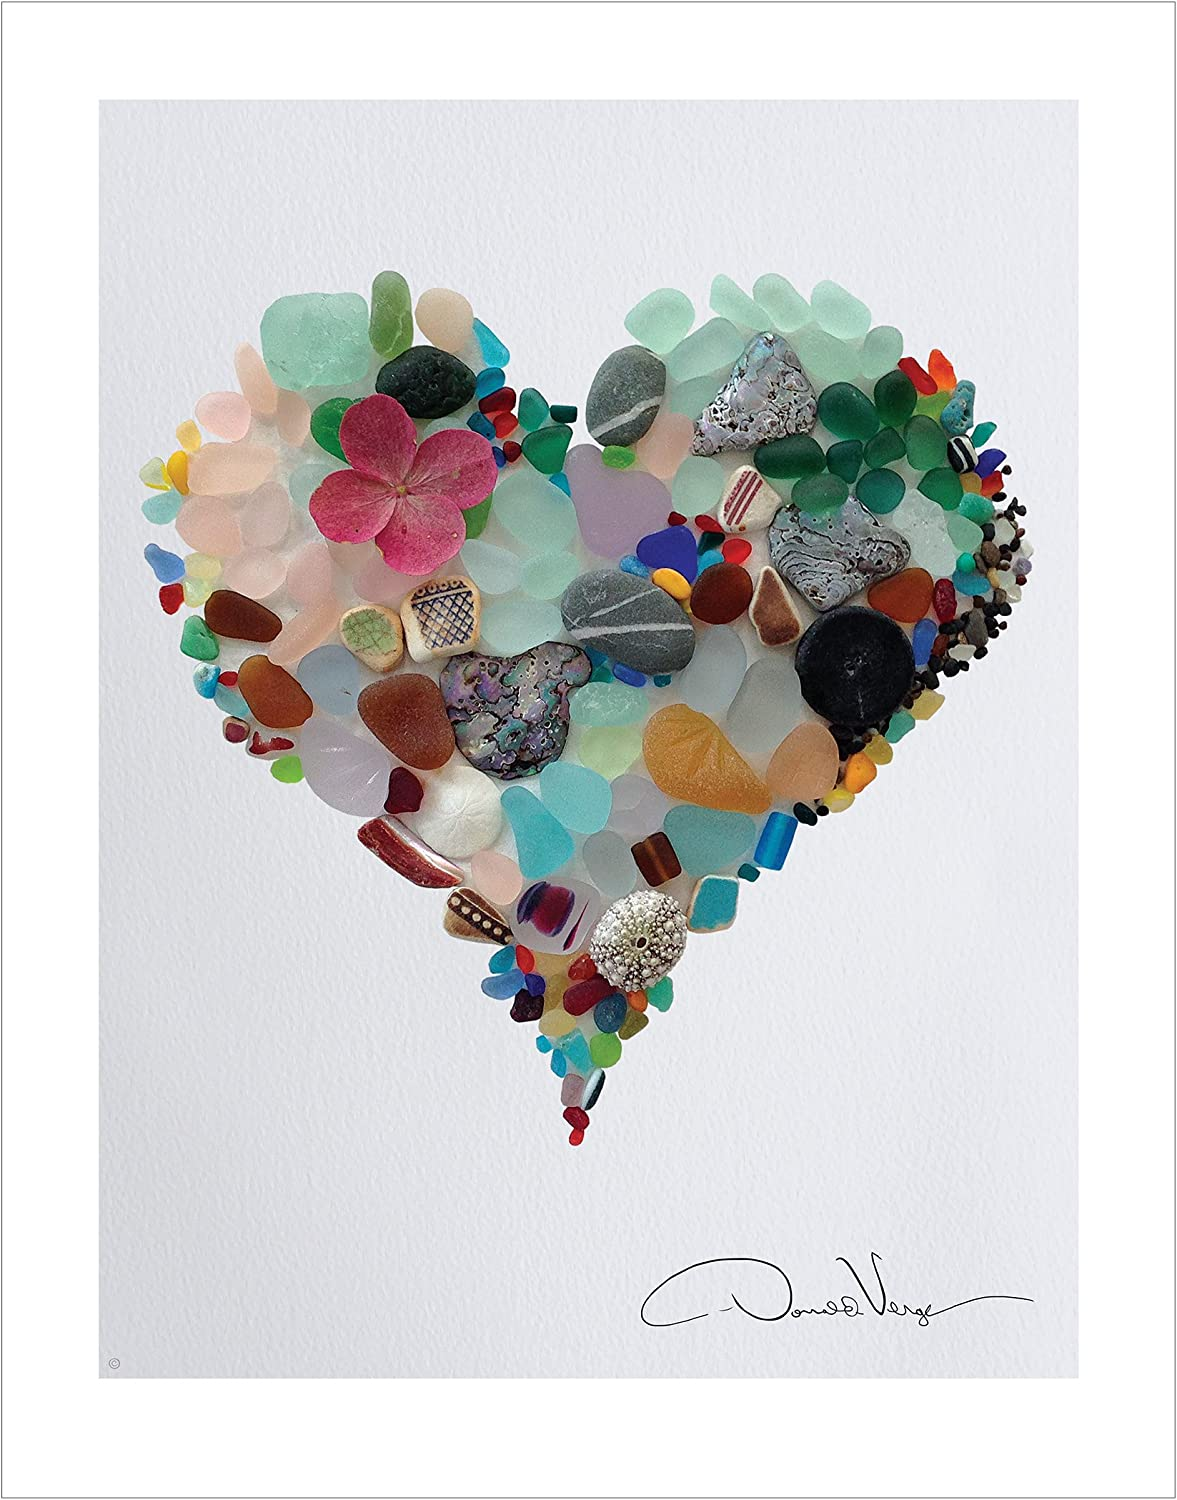 Decor Graphic Design movie Poster.CALOR.Rainbow Heat.Colorful Heart Love art